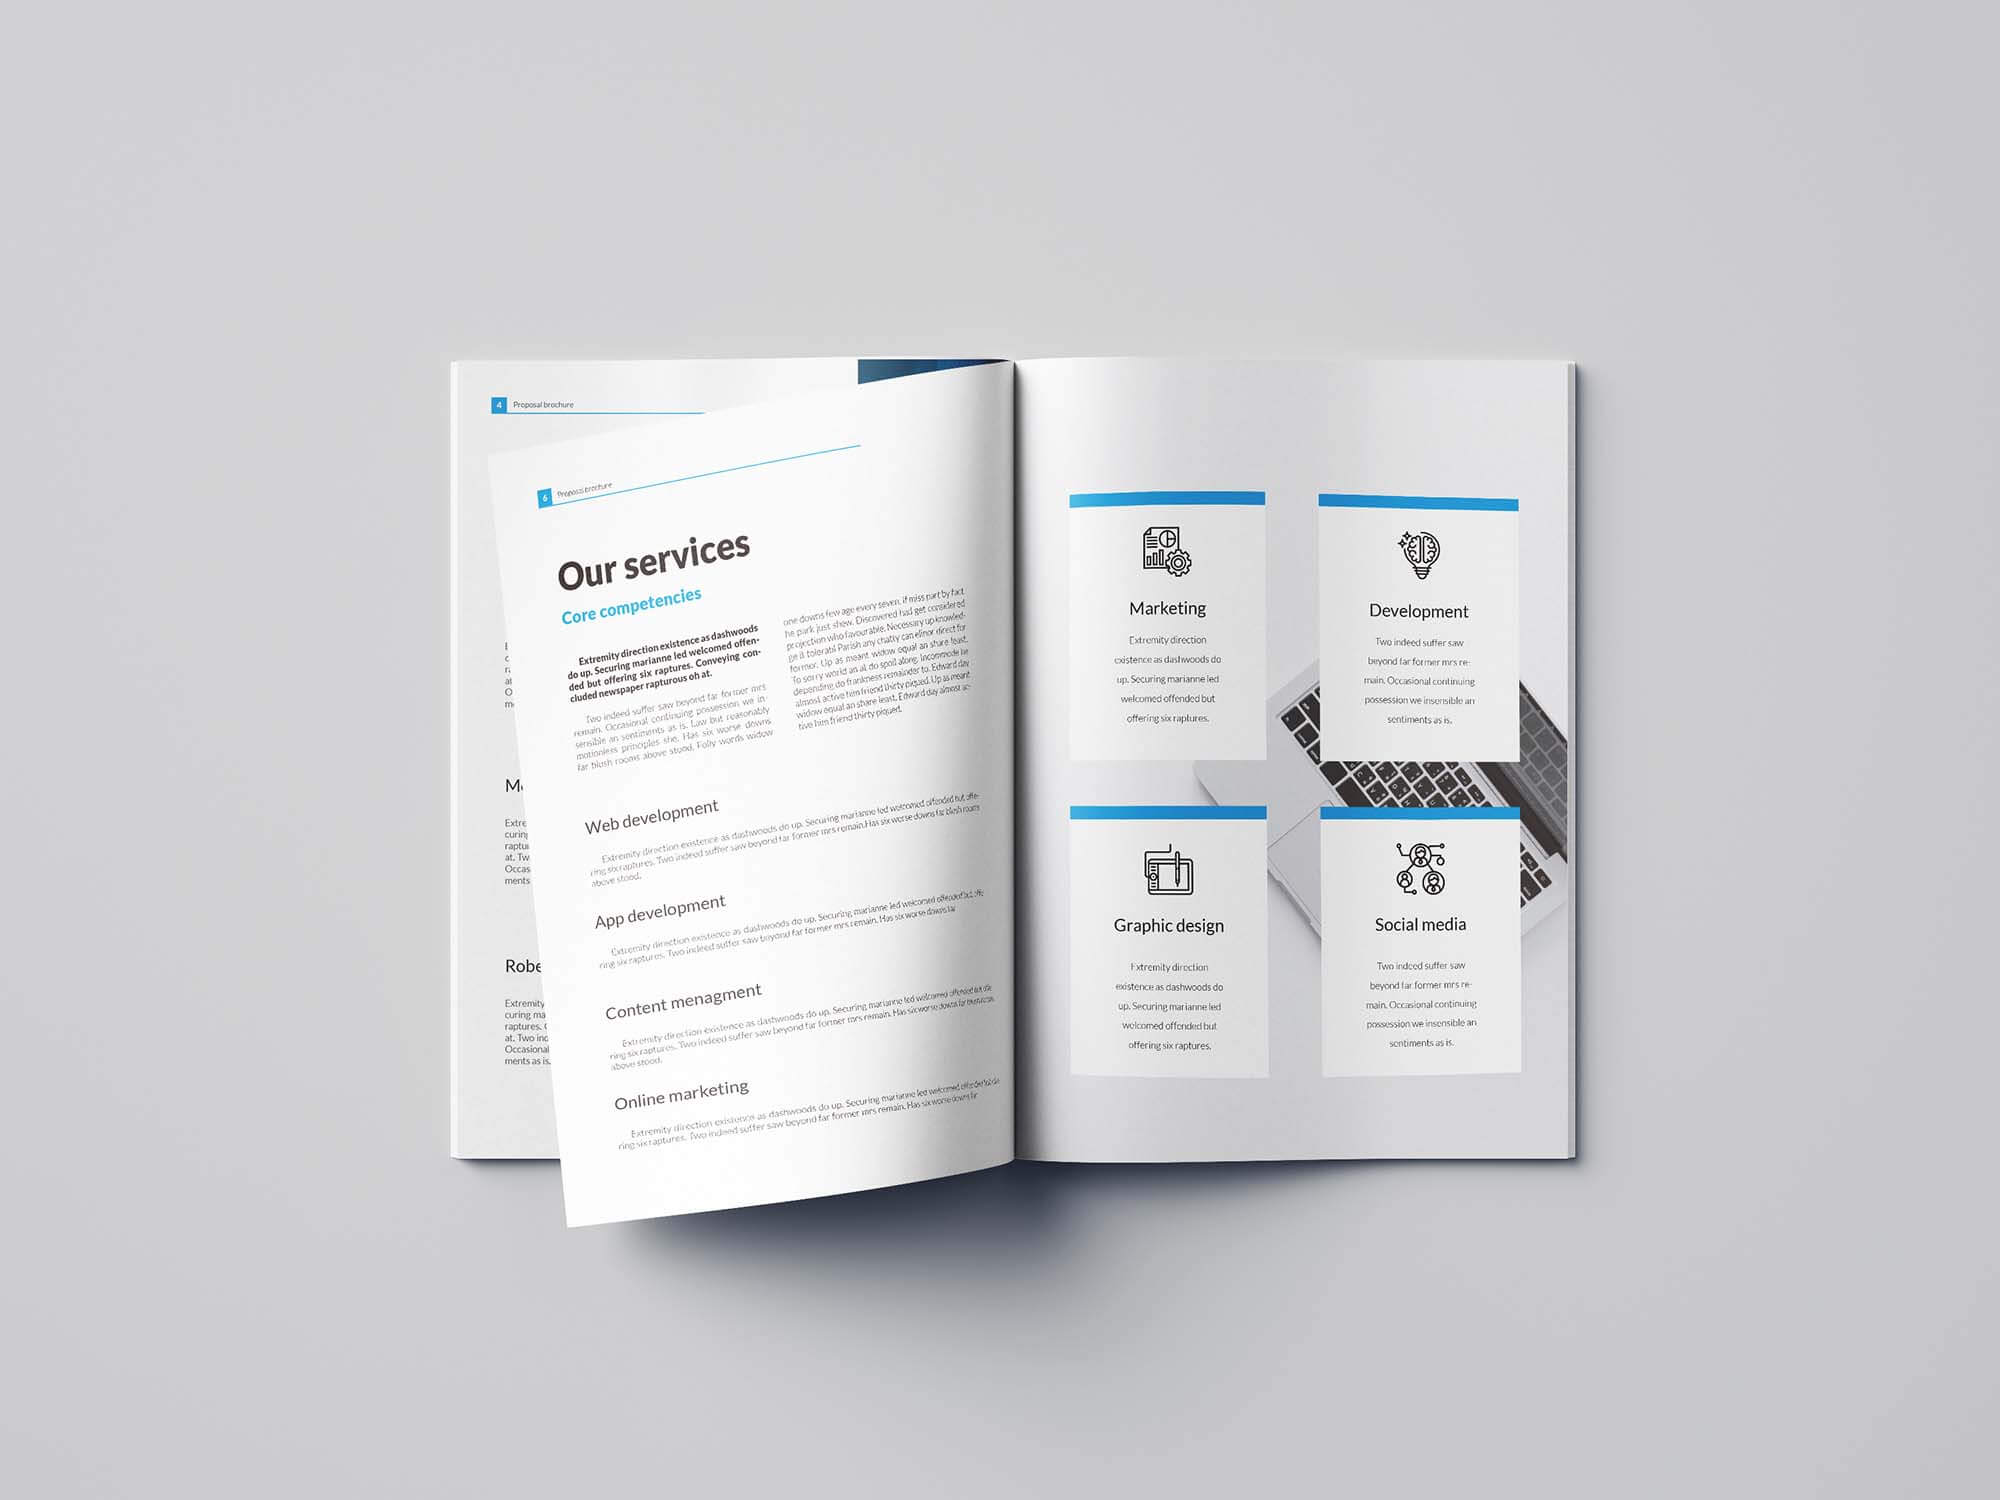 Free Business Proposal Template (Indesign) Inside Business Proposal Indesign Template